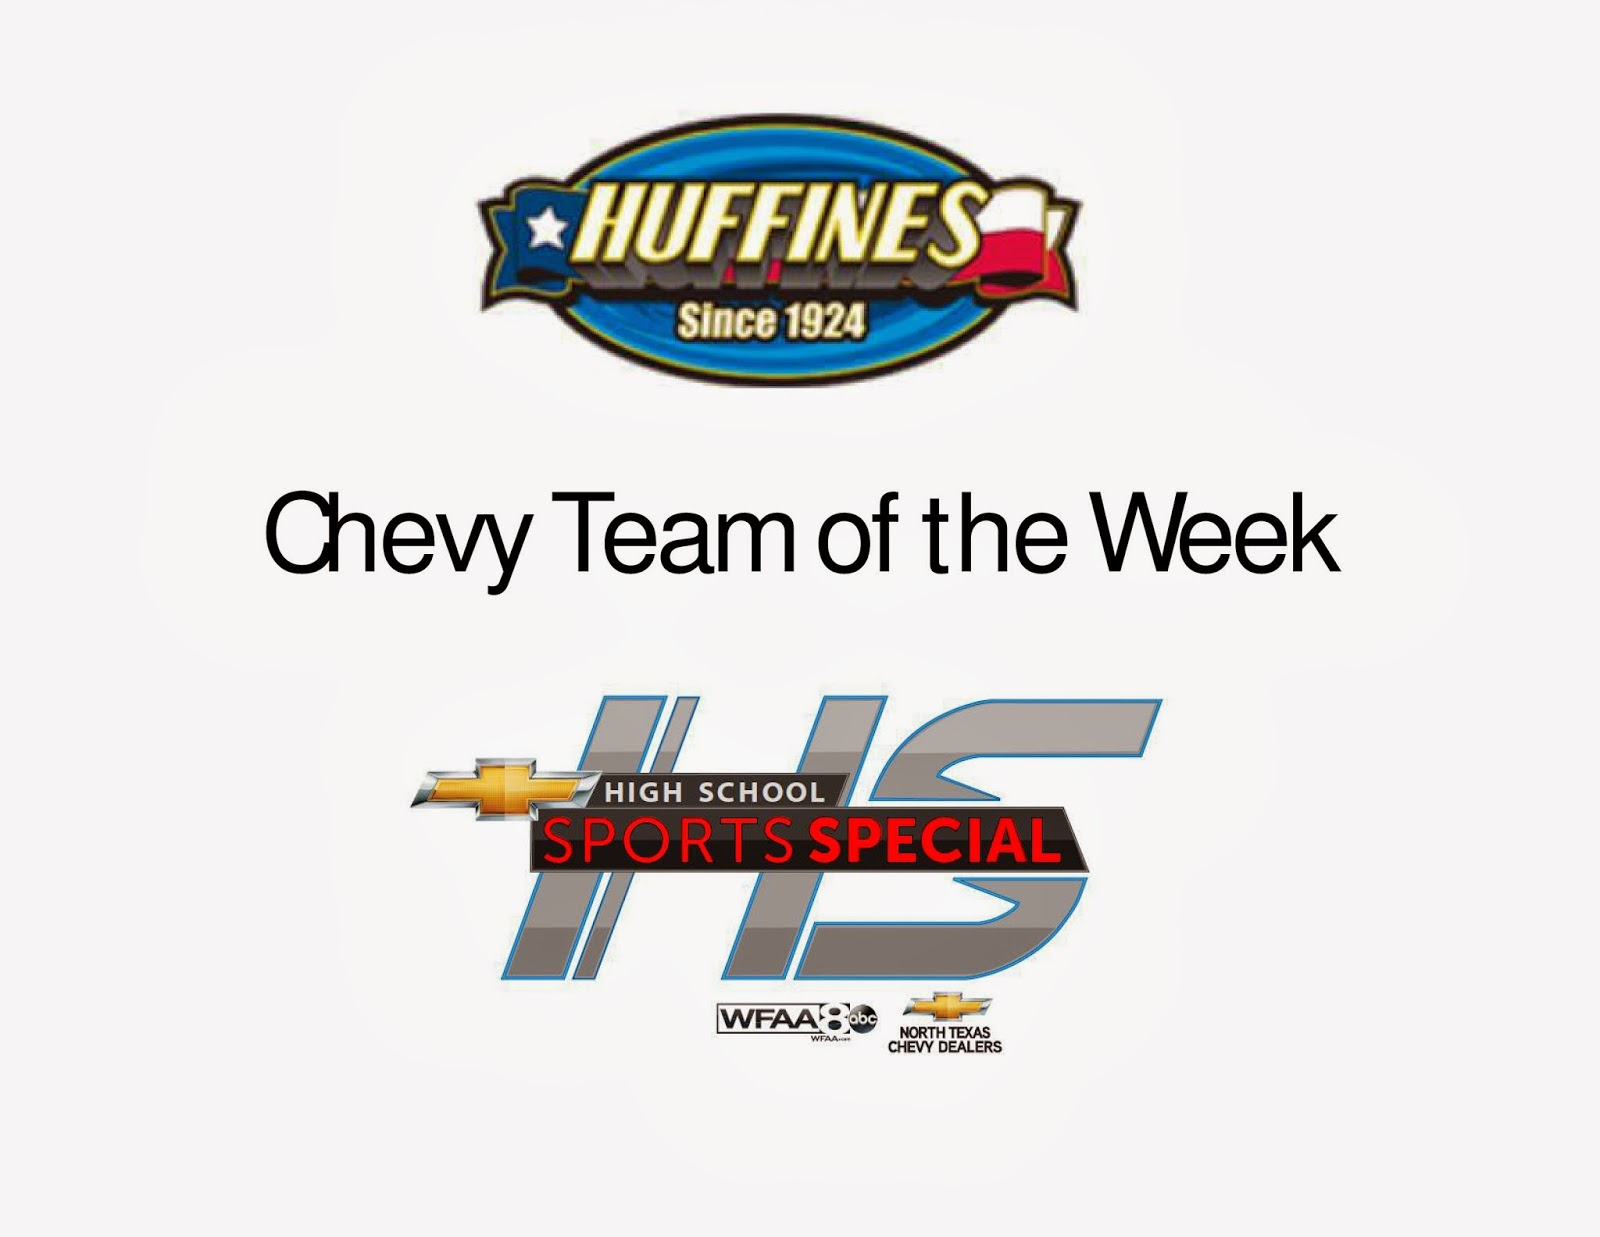 Huffines Chevrolet Plano Huffines Chevy Plano Team Of The Week